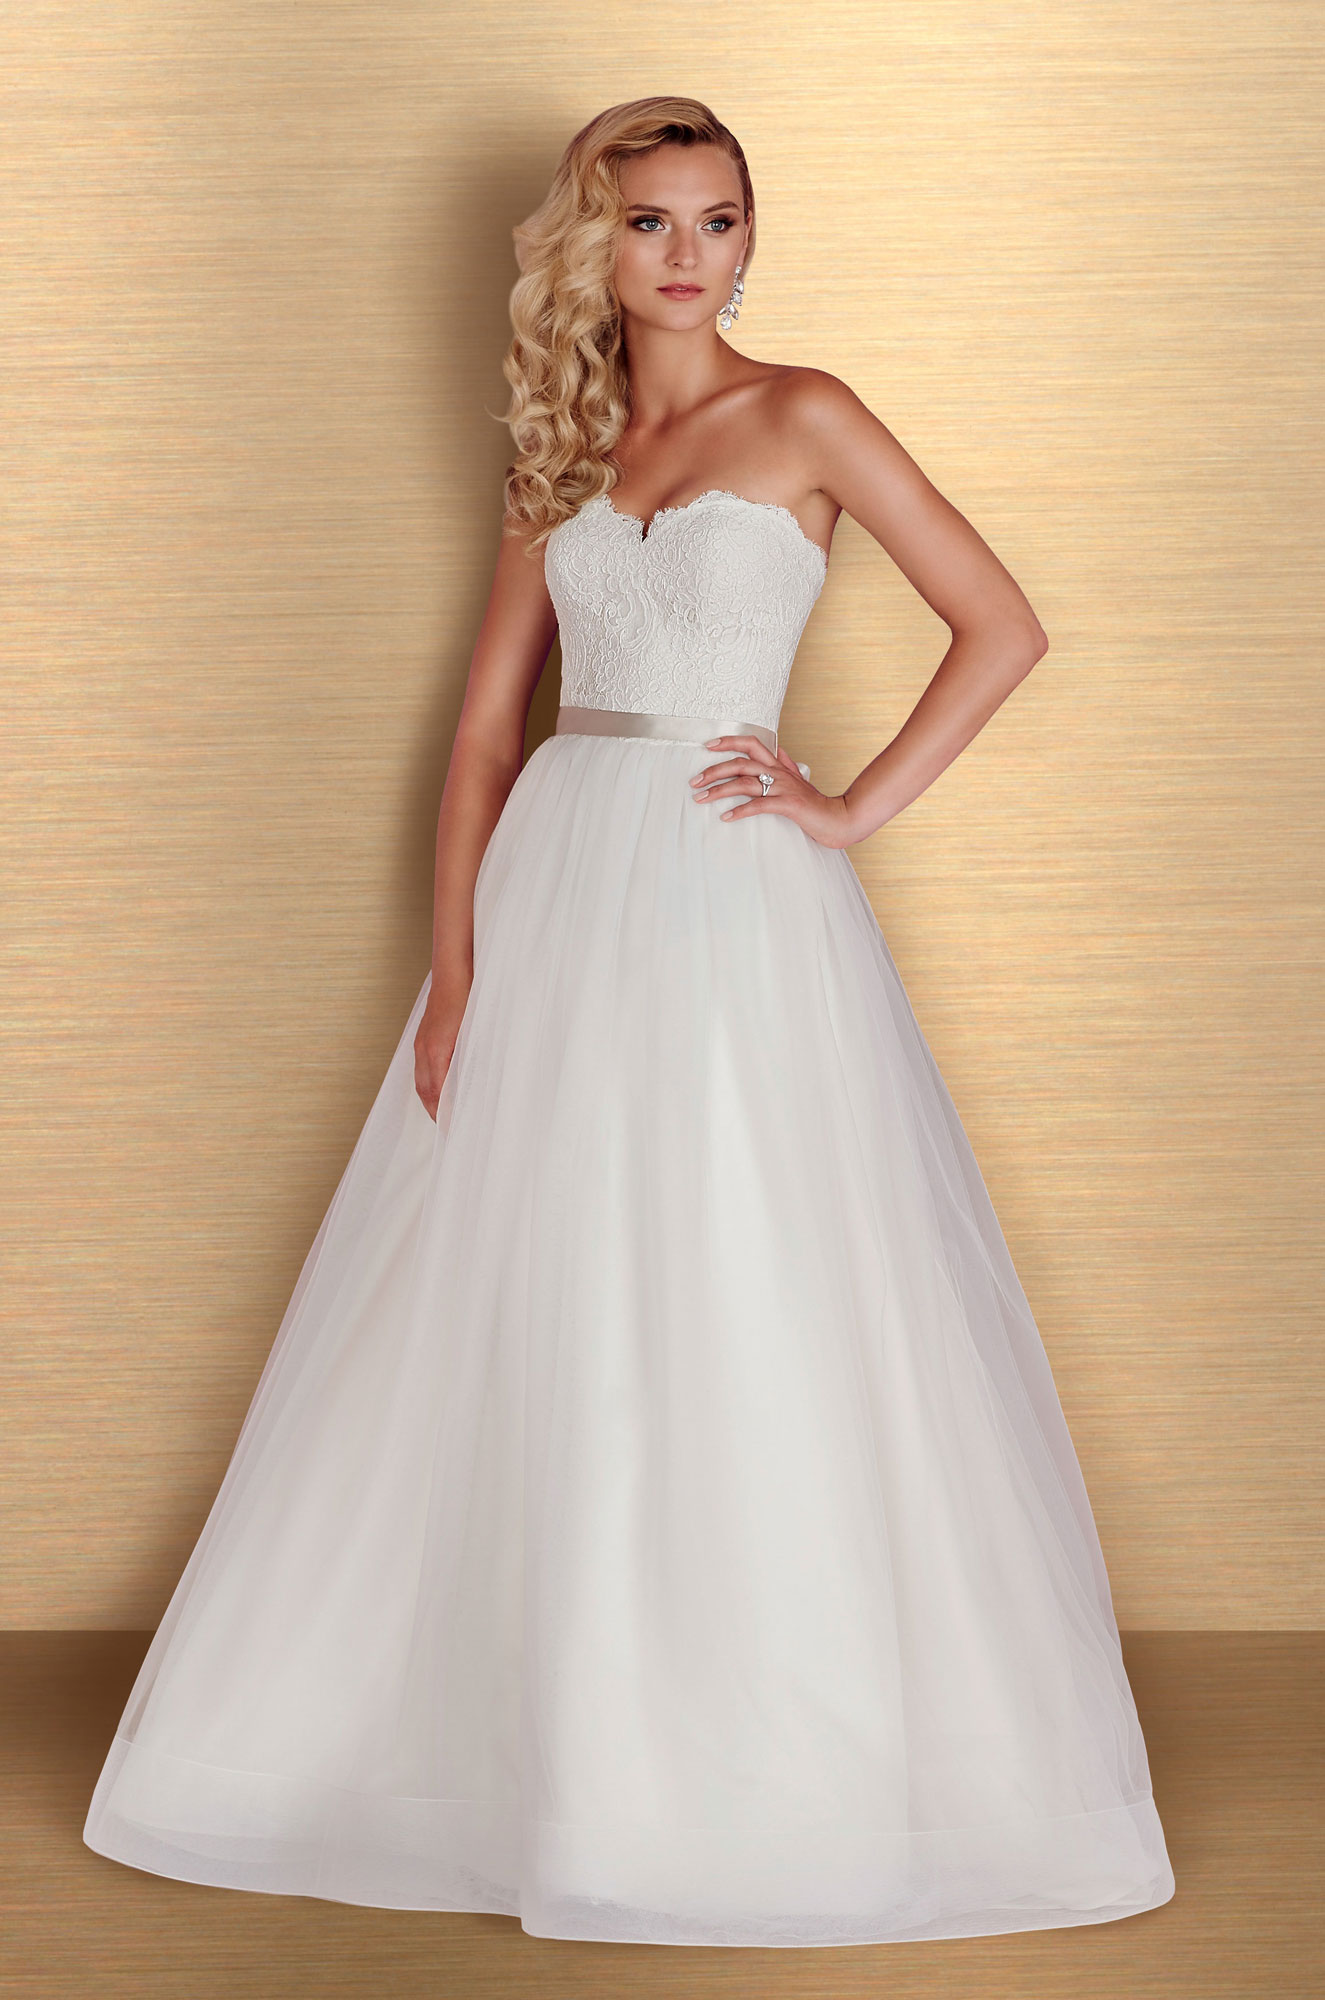 Skirt Ball Gown Wedding Dress - Style #4668 | Paloma Blanca